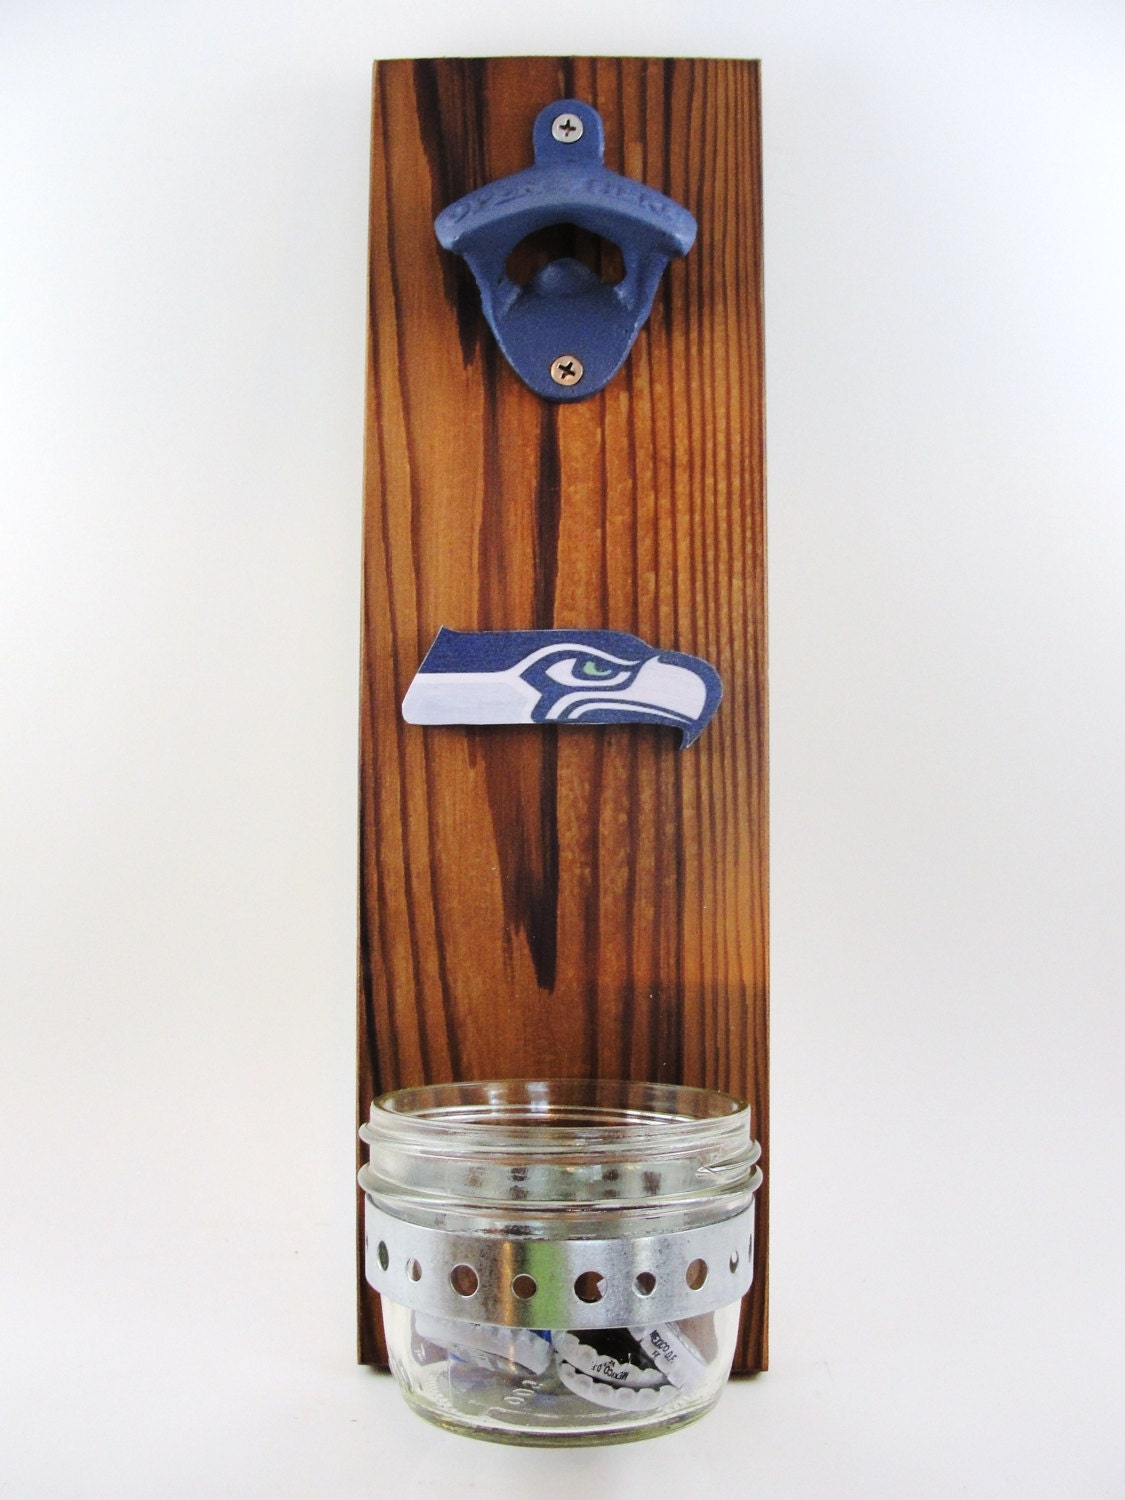 d capsuleur mural mont seattle seahawks cedar receveur de. Black Bedroom Furniture Sets. Home Design Ideas